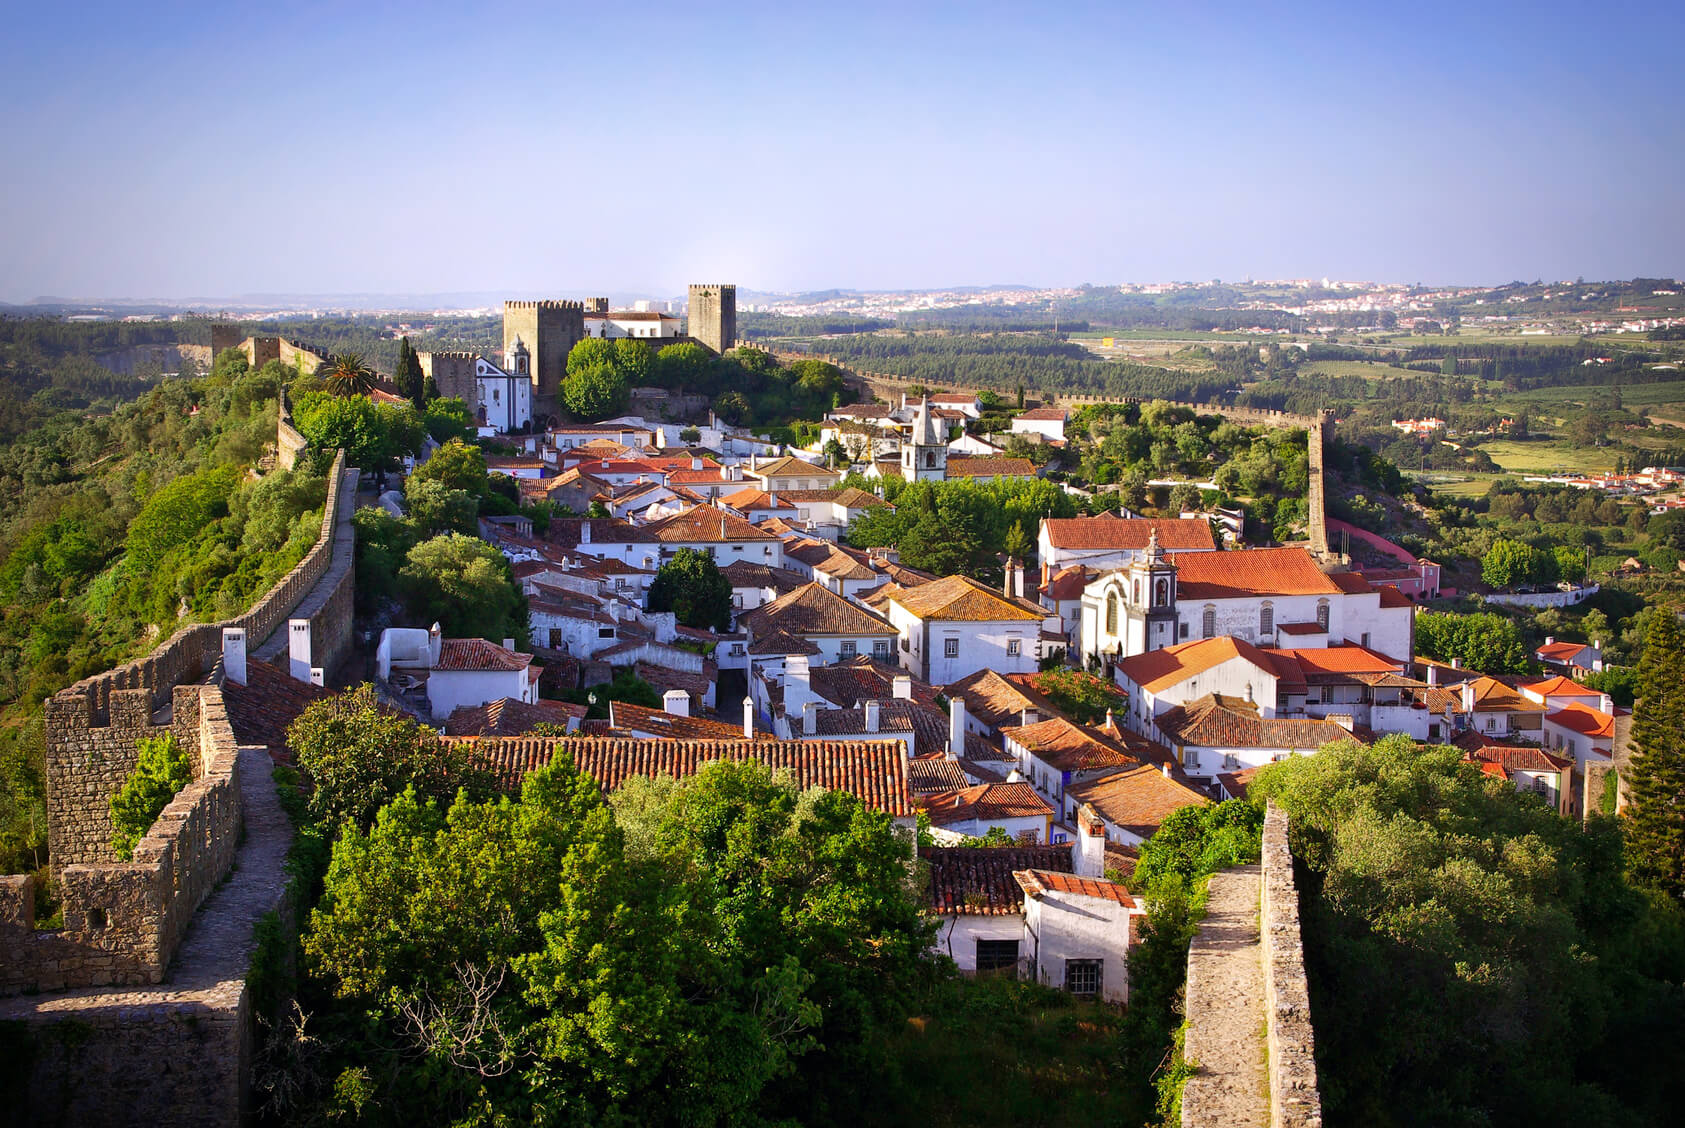 6 Days in Portugal: Tour Through Óbidos, Sintra, Lisbon and More